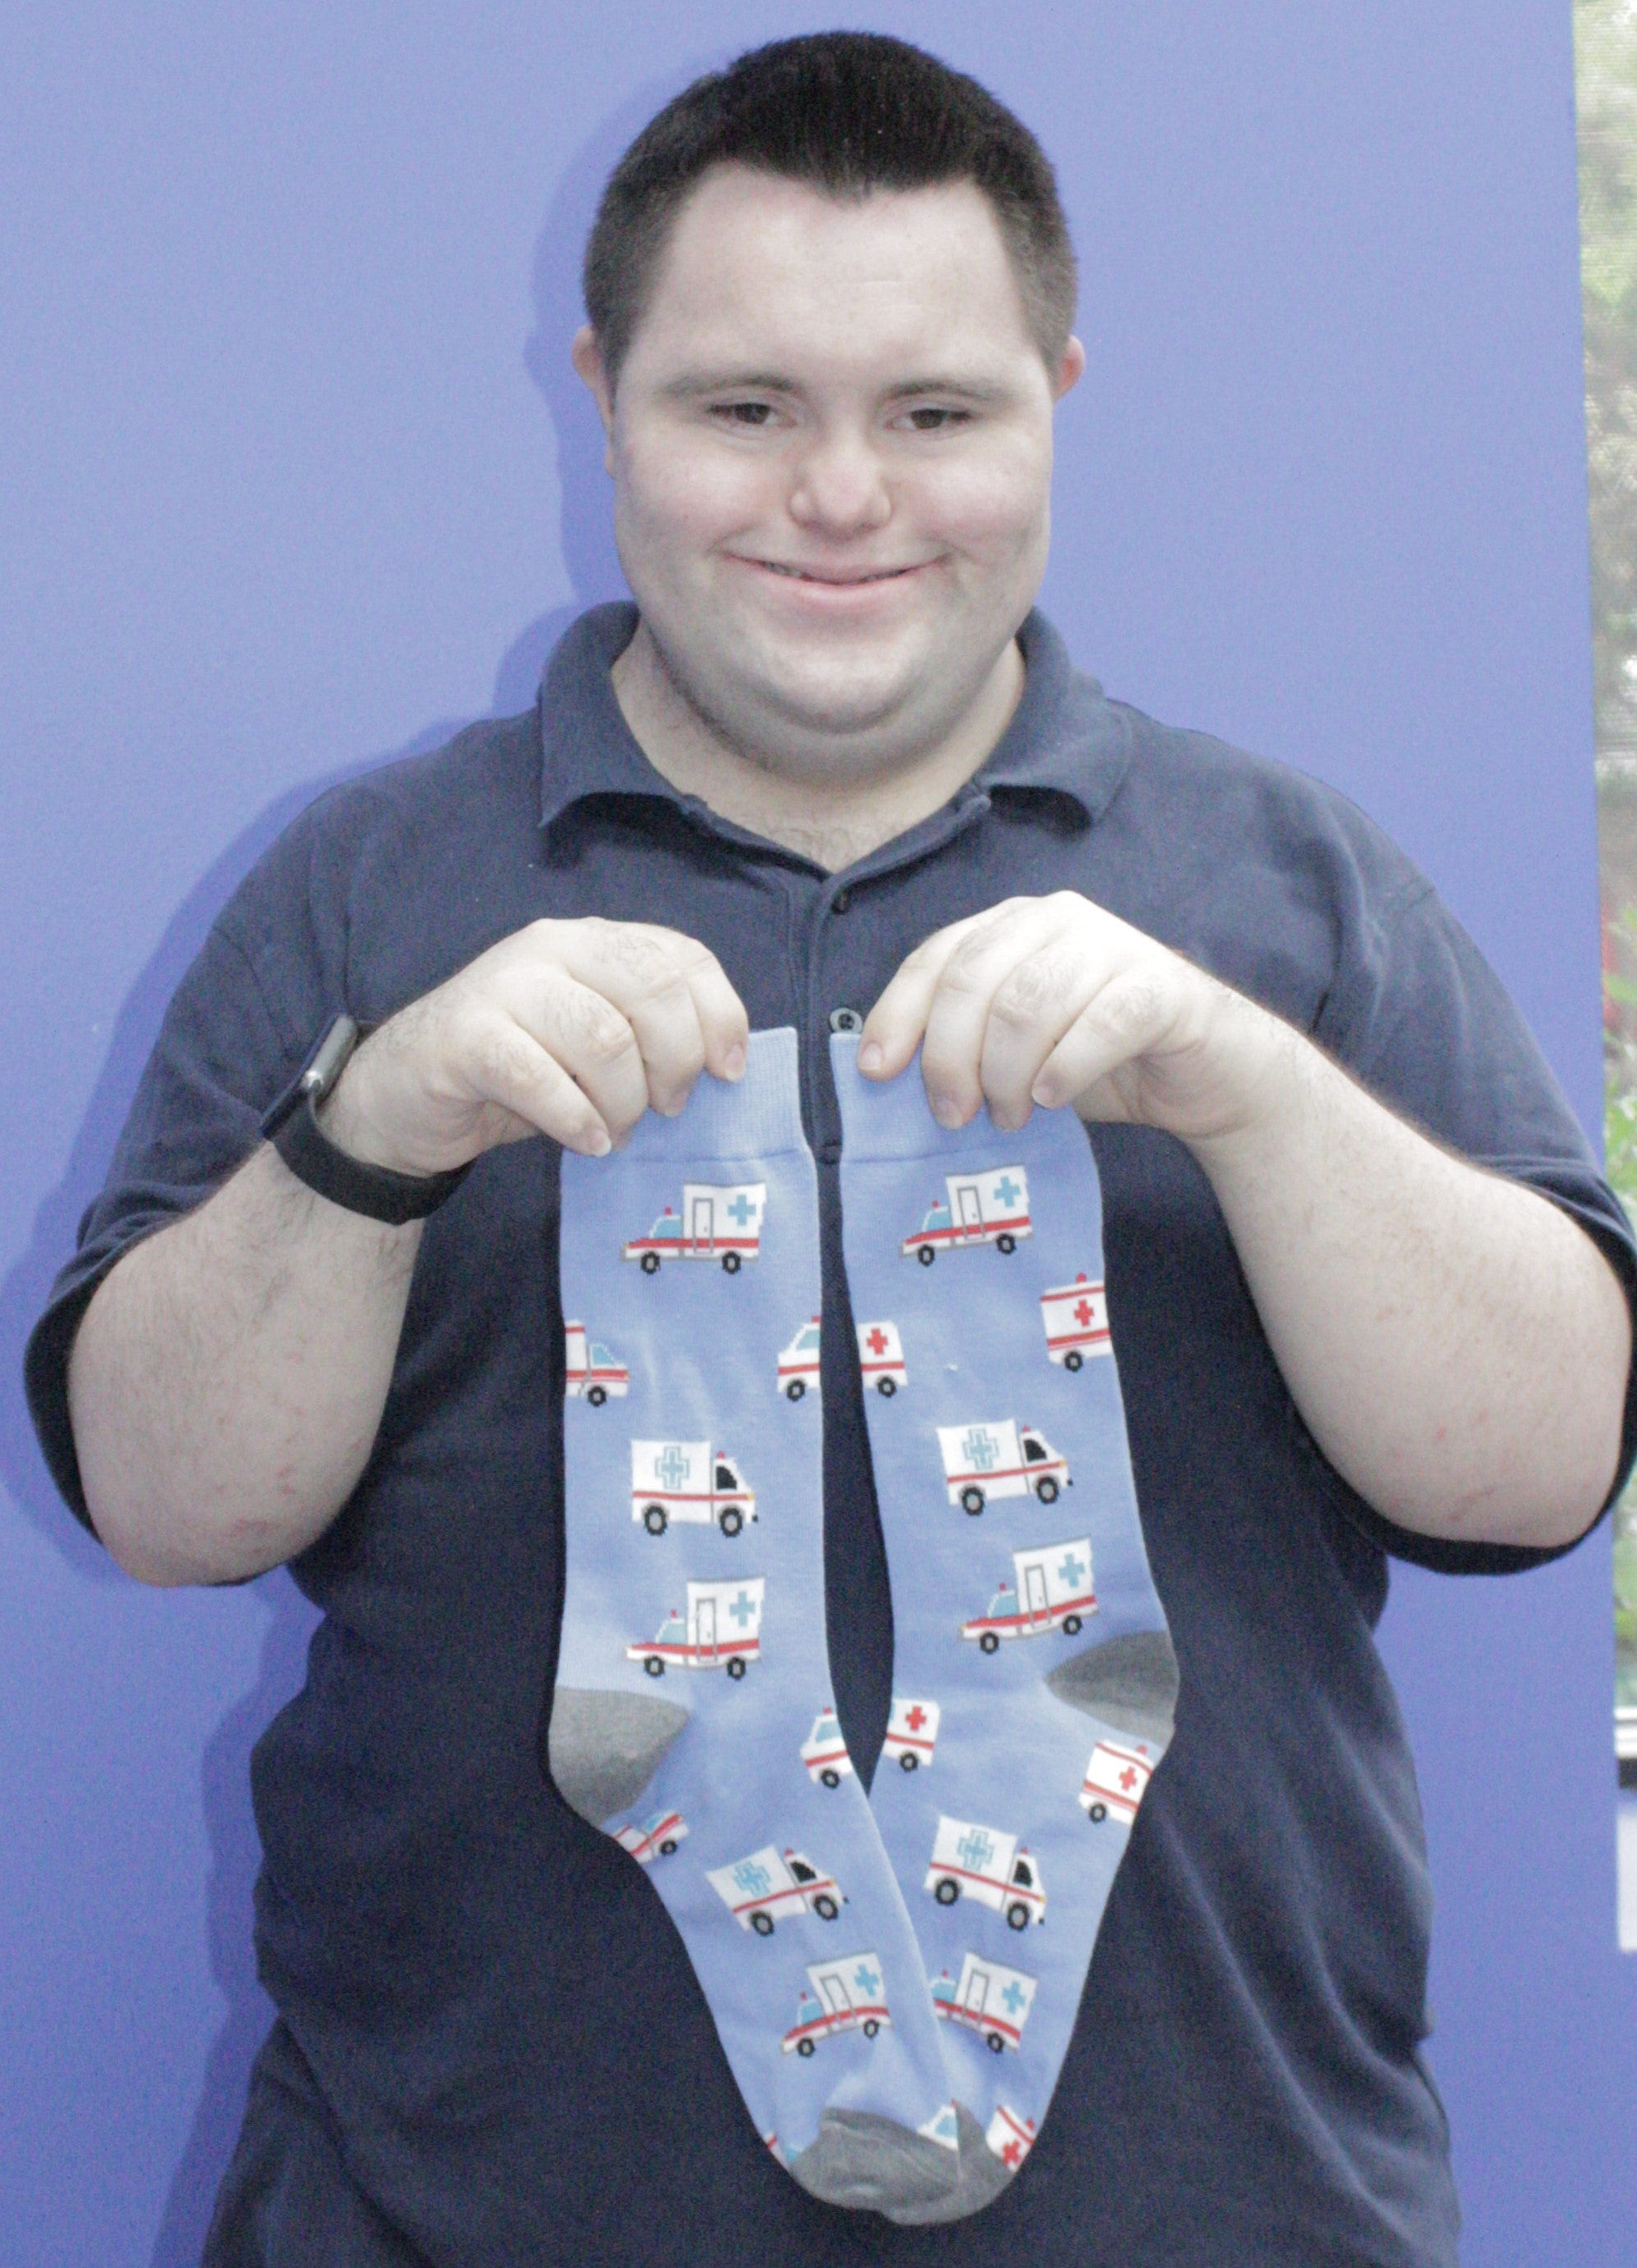 John's Crazy Socks Introduces EMT Tribute Socks